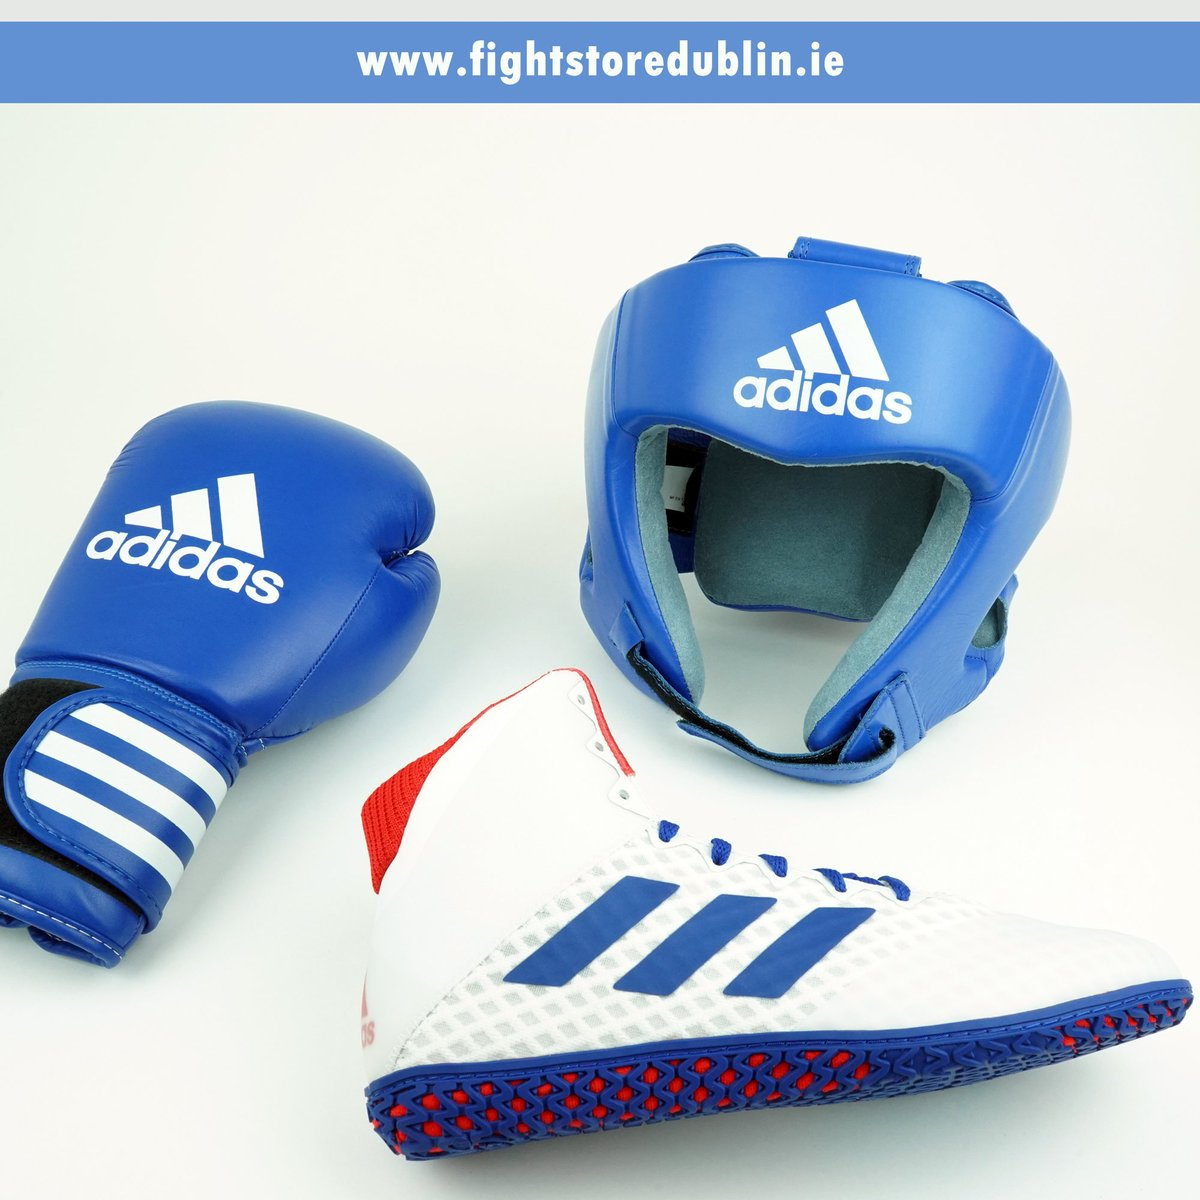 Boxing season is around the corner, get your blue or red training gear in store or online 👇 http://www.fightstoredublin.ie   #fightstoreireland #thefighterschoice®  #adidas #adidasboxing #boxinggloves #boxingstore #fightstore #irishboxing #HereToCreate #training #competition #boxing